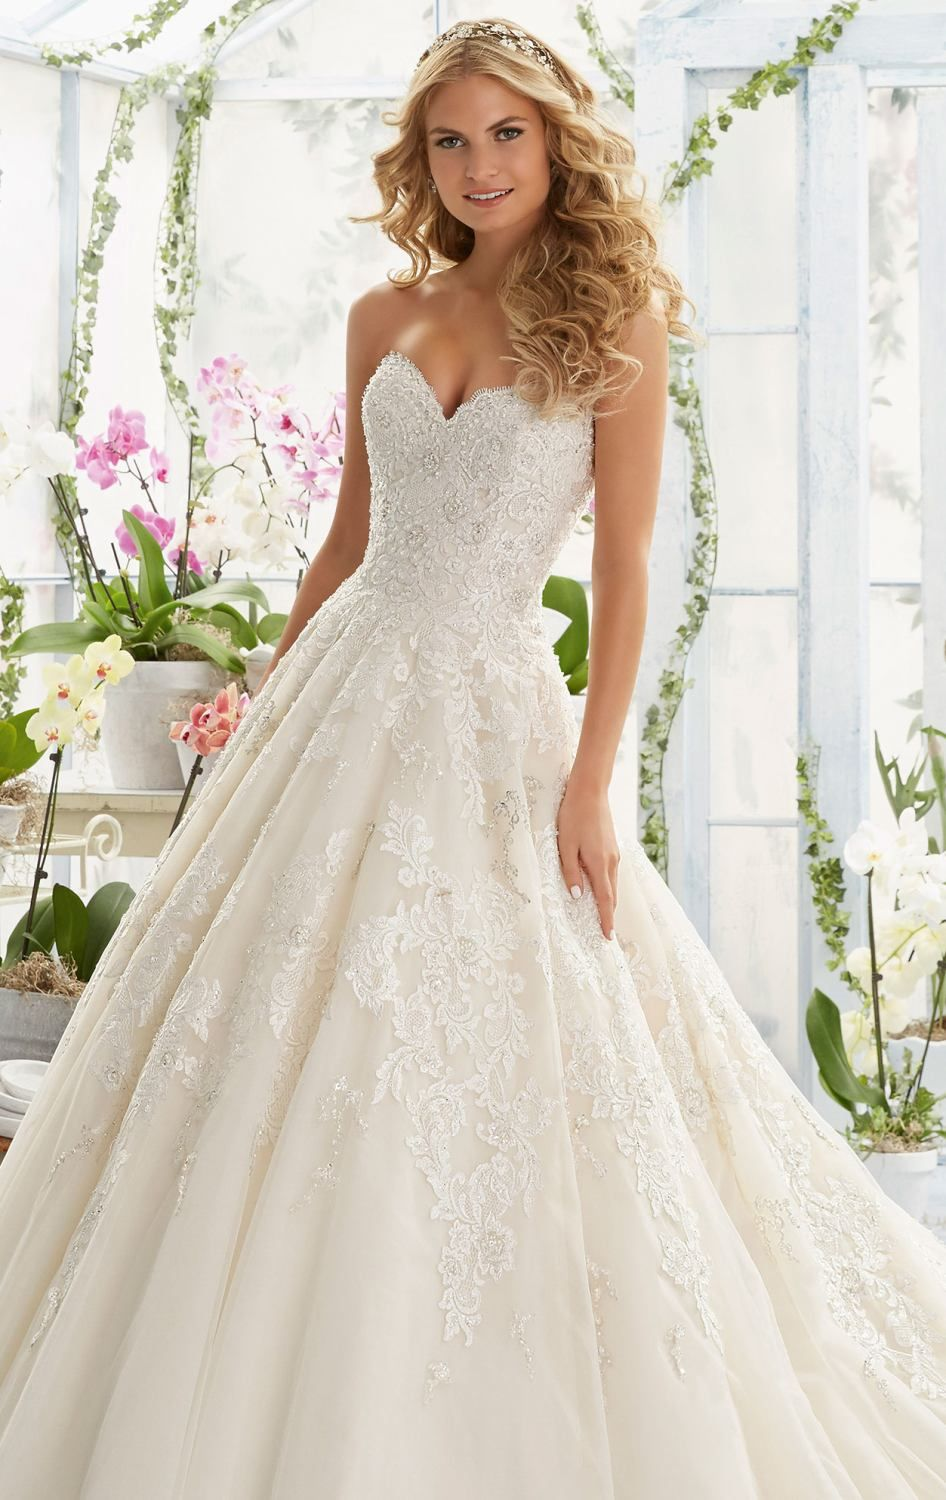 Become an angelic bride on your special day in Bridal by Mori Lee ...